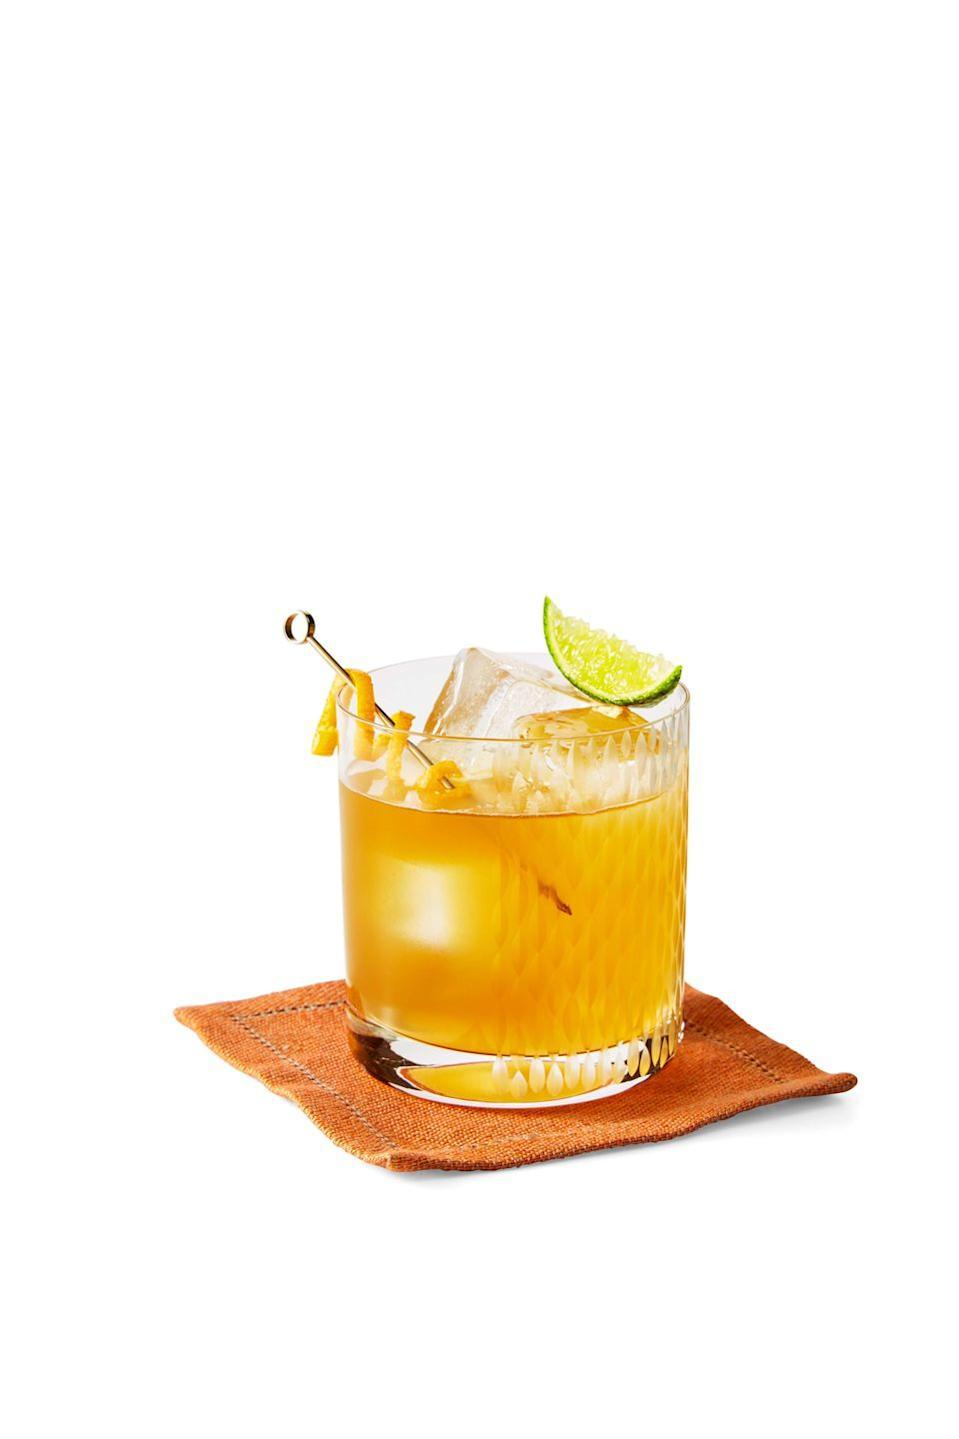 """<p>Fall foliage isn't the only view you'll be enjoying this season! Take a gander at this glorious go-to citrus drink. Maple syrup serves as a <em>natural sweetener</em> to this bourbon-based beverage.<br><br><em><a href=""""https://www.goodhousekeeping.com/food-recipes/a36890496/maple-whiskey-sour-recipe/"""" rel=""""nofollow noopener"""" target=""""_blank"""" data-ylk=""""slk:Get the recipe for Maple Whiskey Sour »"""" class=""""link rapid-noclick-resp"""">Get the recipe for Maple Whiskey Sour »</a></em><br></p>"""